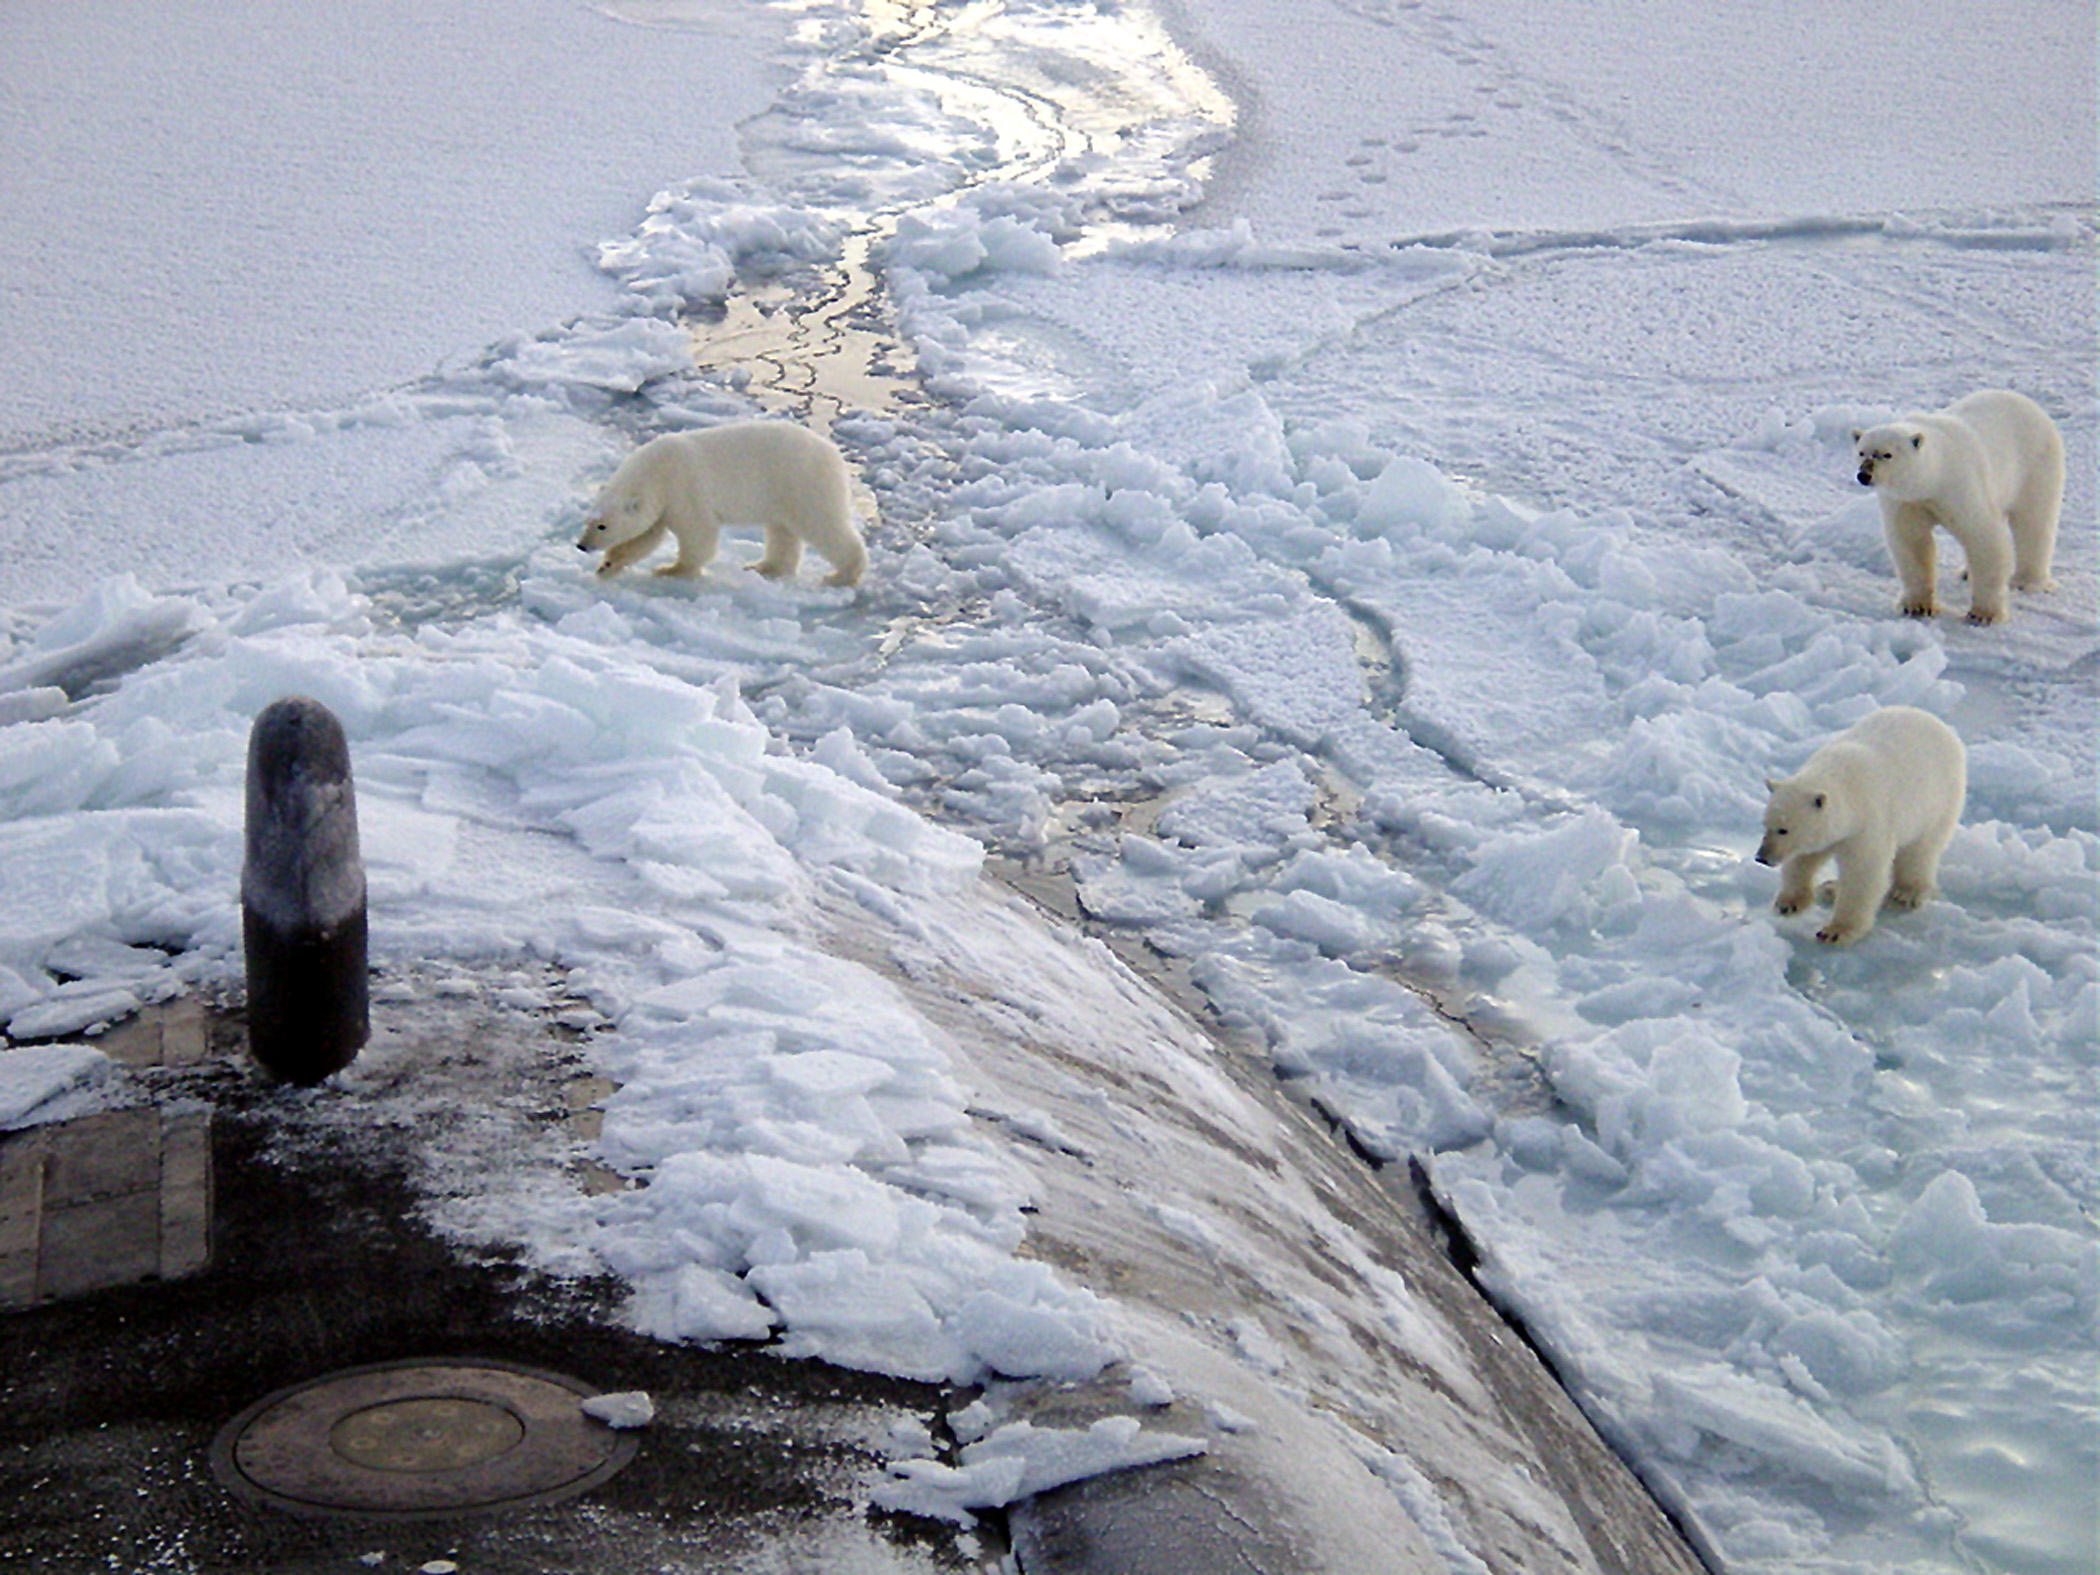 """That's the second biggest whale I've seen!""  Three Polar bears approach the starboard bow of the Los Angeles-class fast attack submarine USS Honolulu (SSN 718) while surfaced 280 miles from the North Pole. Sighted by a lookout from the bridge (sail) of the submarine, the bears investigated the boat for almost 2 hours before leaving."